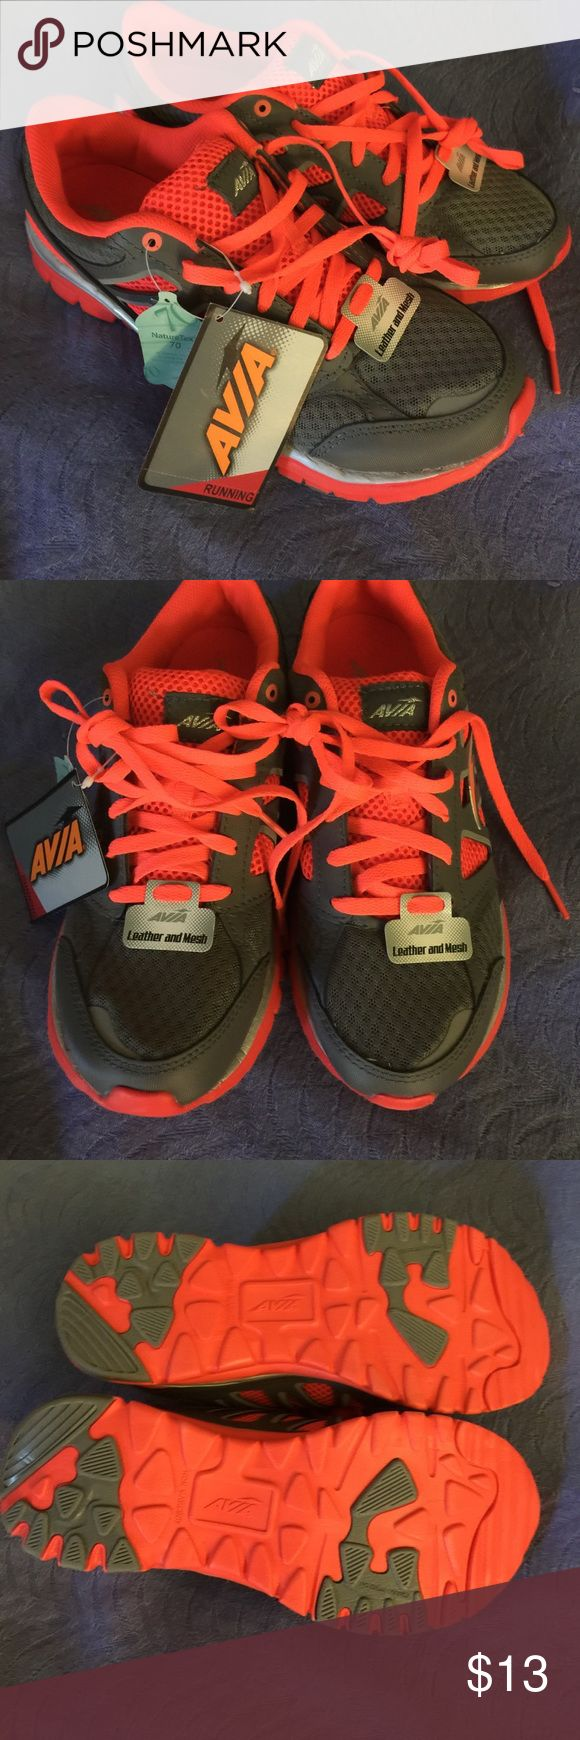 NWT Avia Running Shoes NWT Avia running shoes. Bright coral and gray. Avia Shoes Athletic Shoes